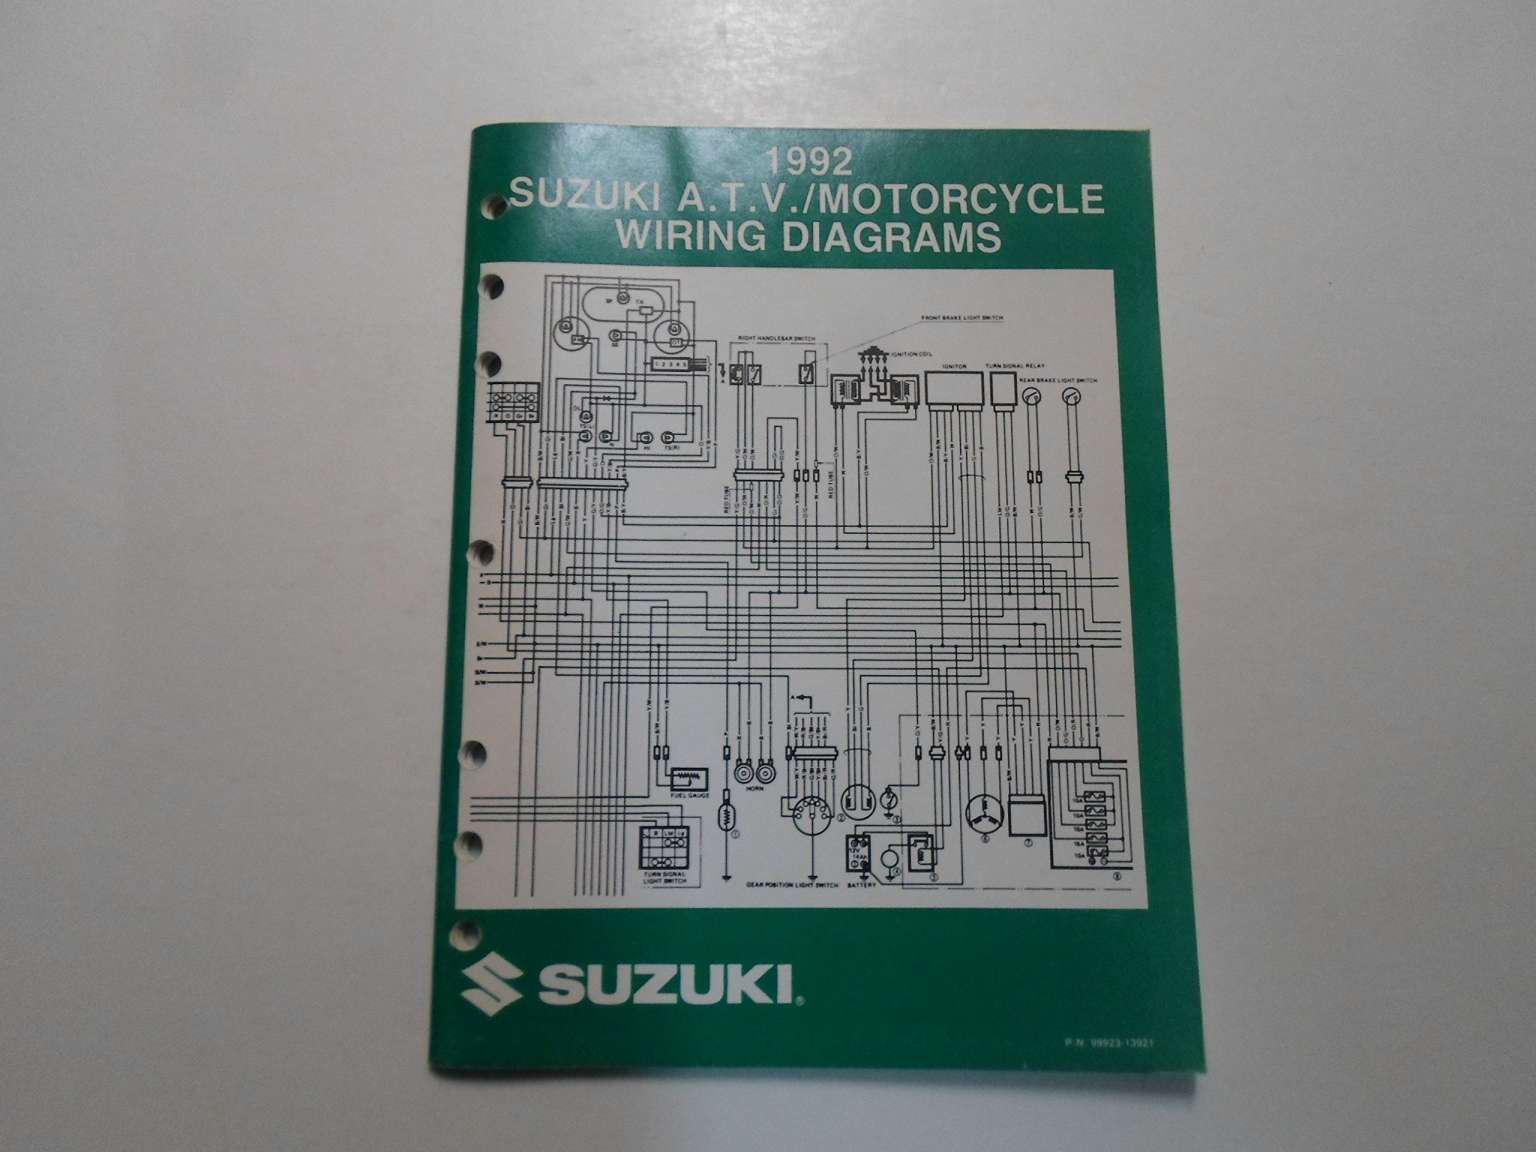 16 Rusi Motorcycle Wiring Diagram Motorcycle Diagram Wiringg Net In 2020 Motorcycle Wiring Suzuki Motorcycle Razor Electric Scooter